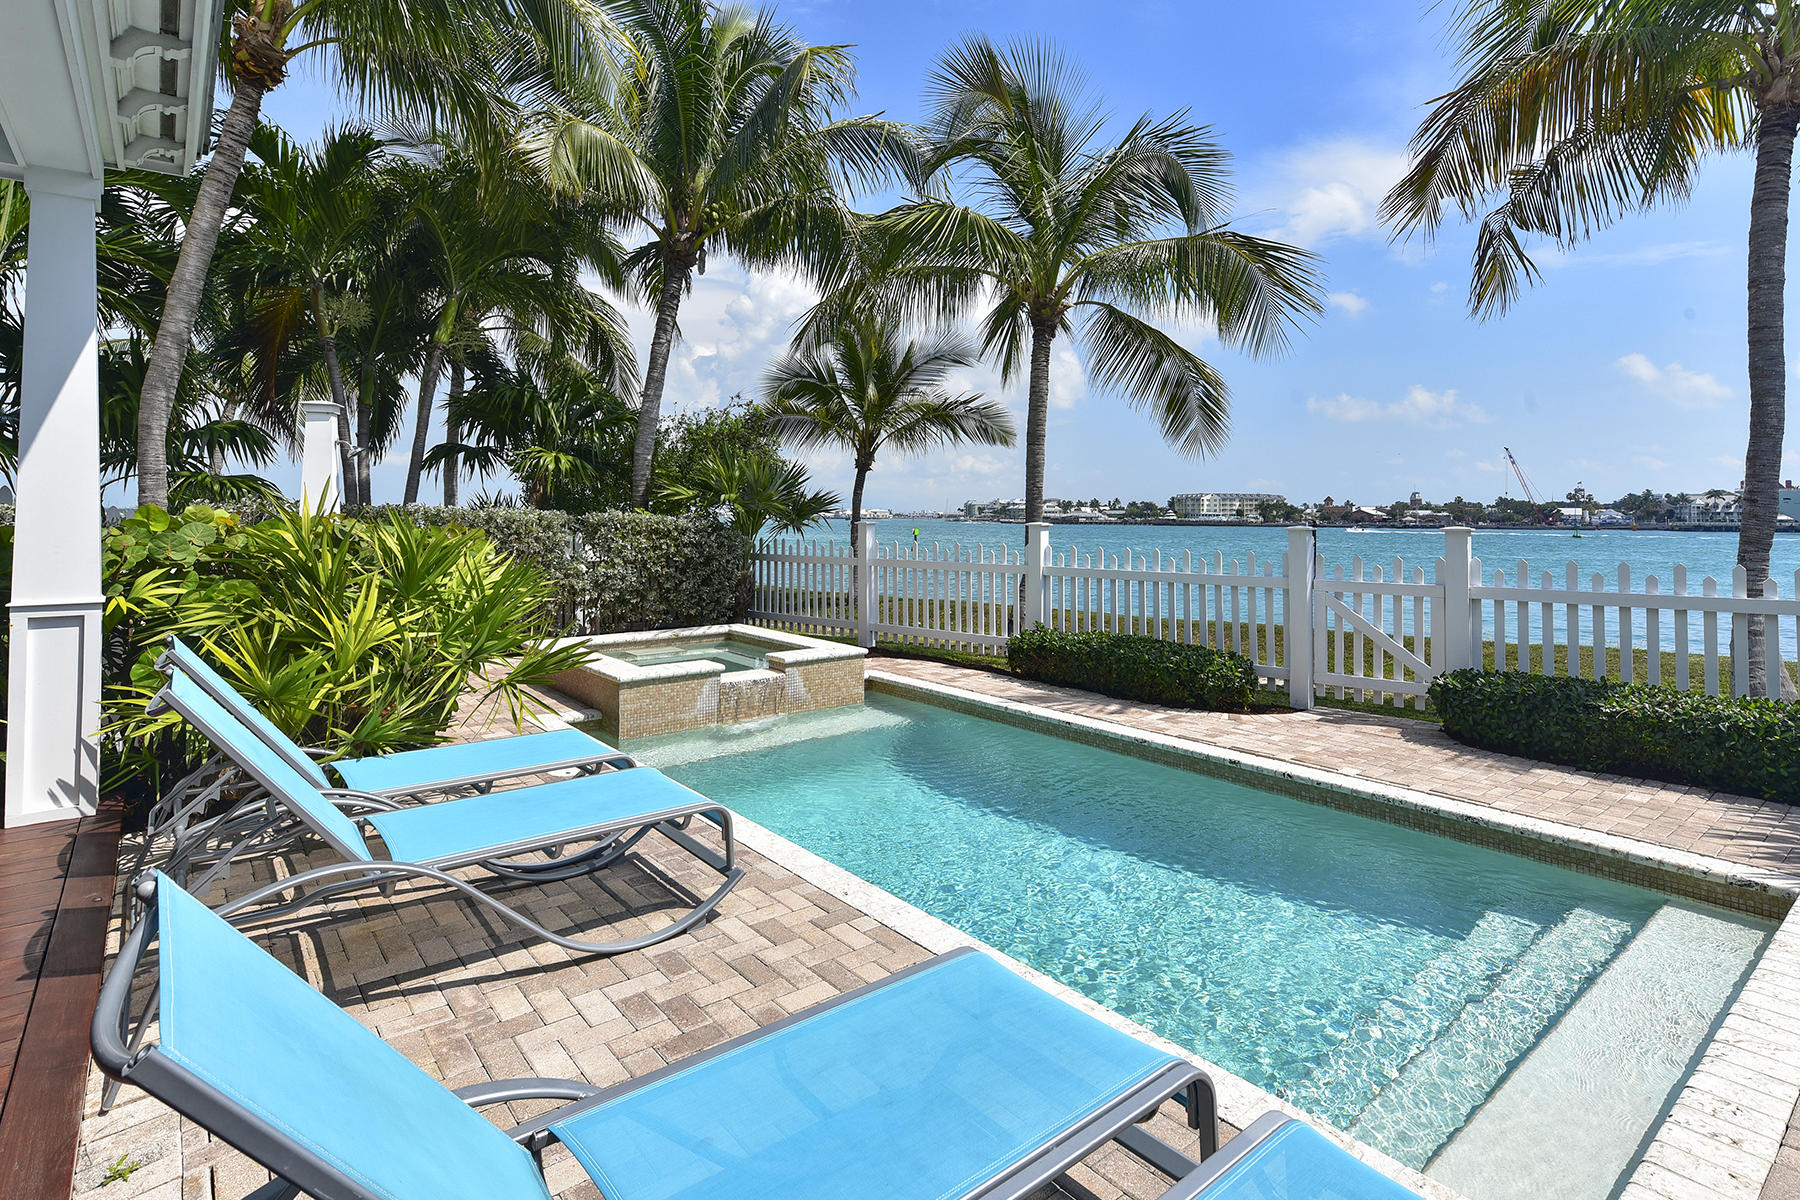 Single Family Homes for Sale at 292 Sunset Key Drive, Key West, FL 292 Sunset Key Drive Key West, Florida 33040 United States